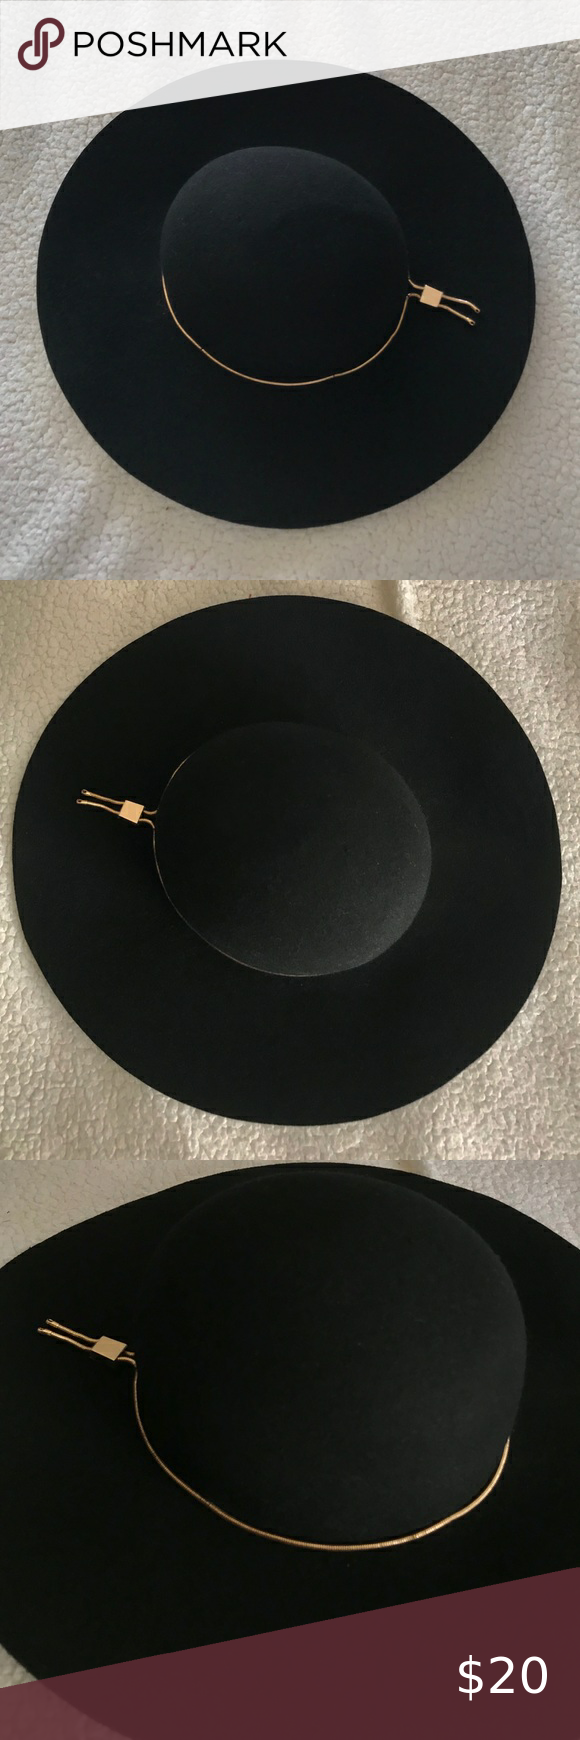 Black felt hat with gold chain detail